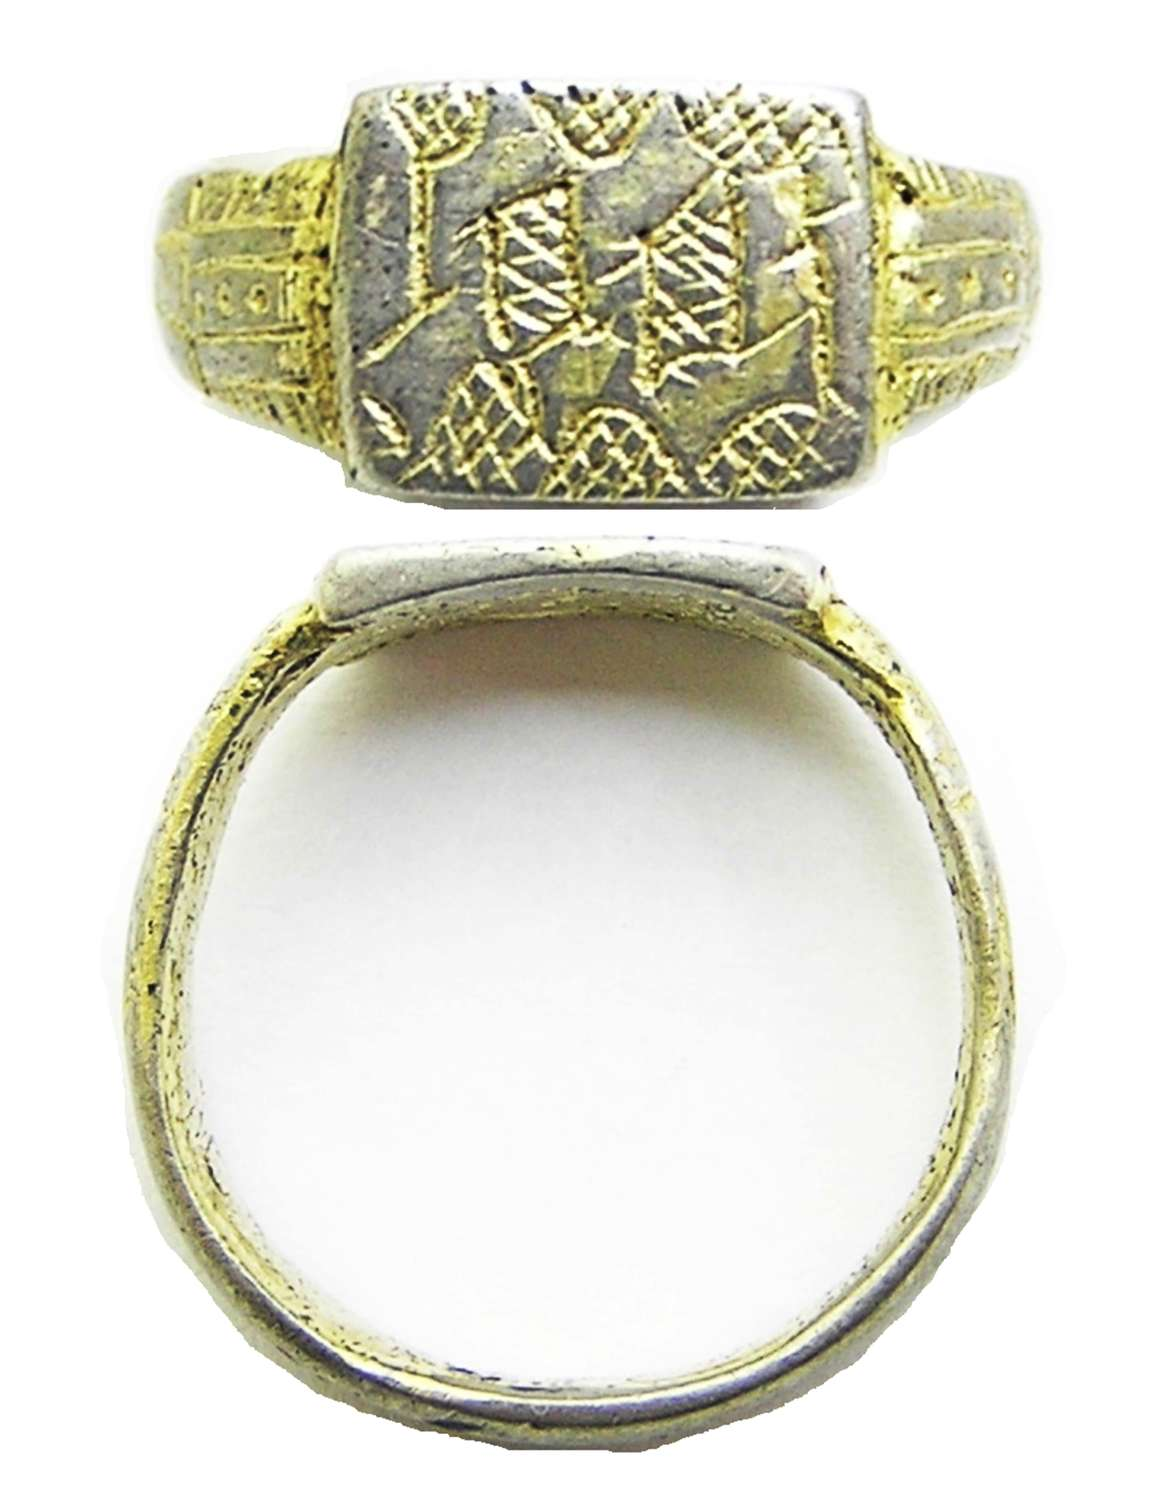 Medieval silver-gilt Retainers ring Black letter 'S' Lancastrian?